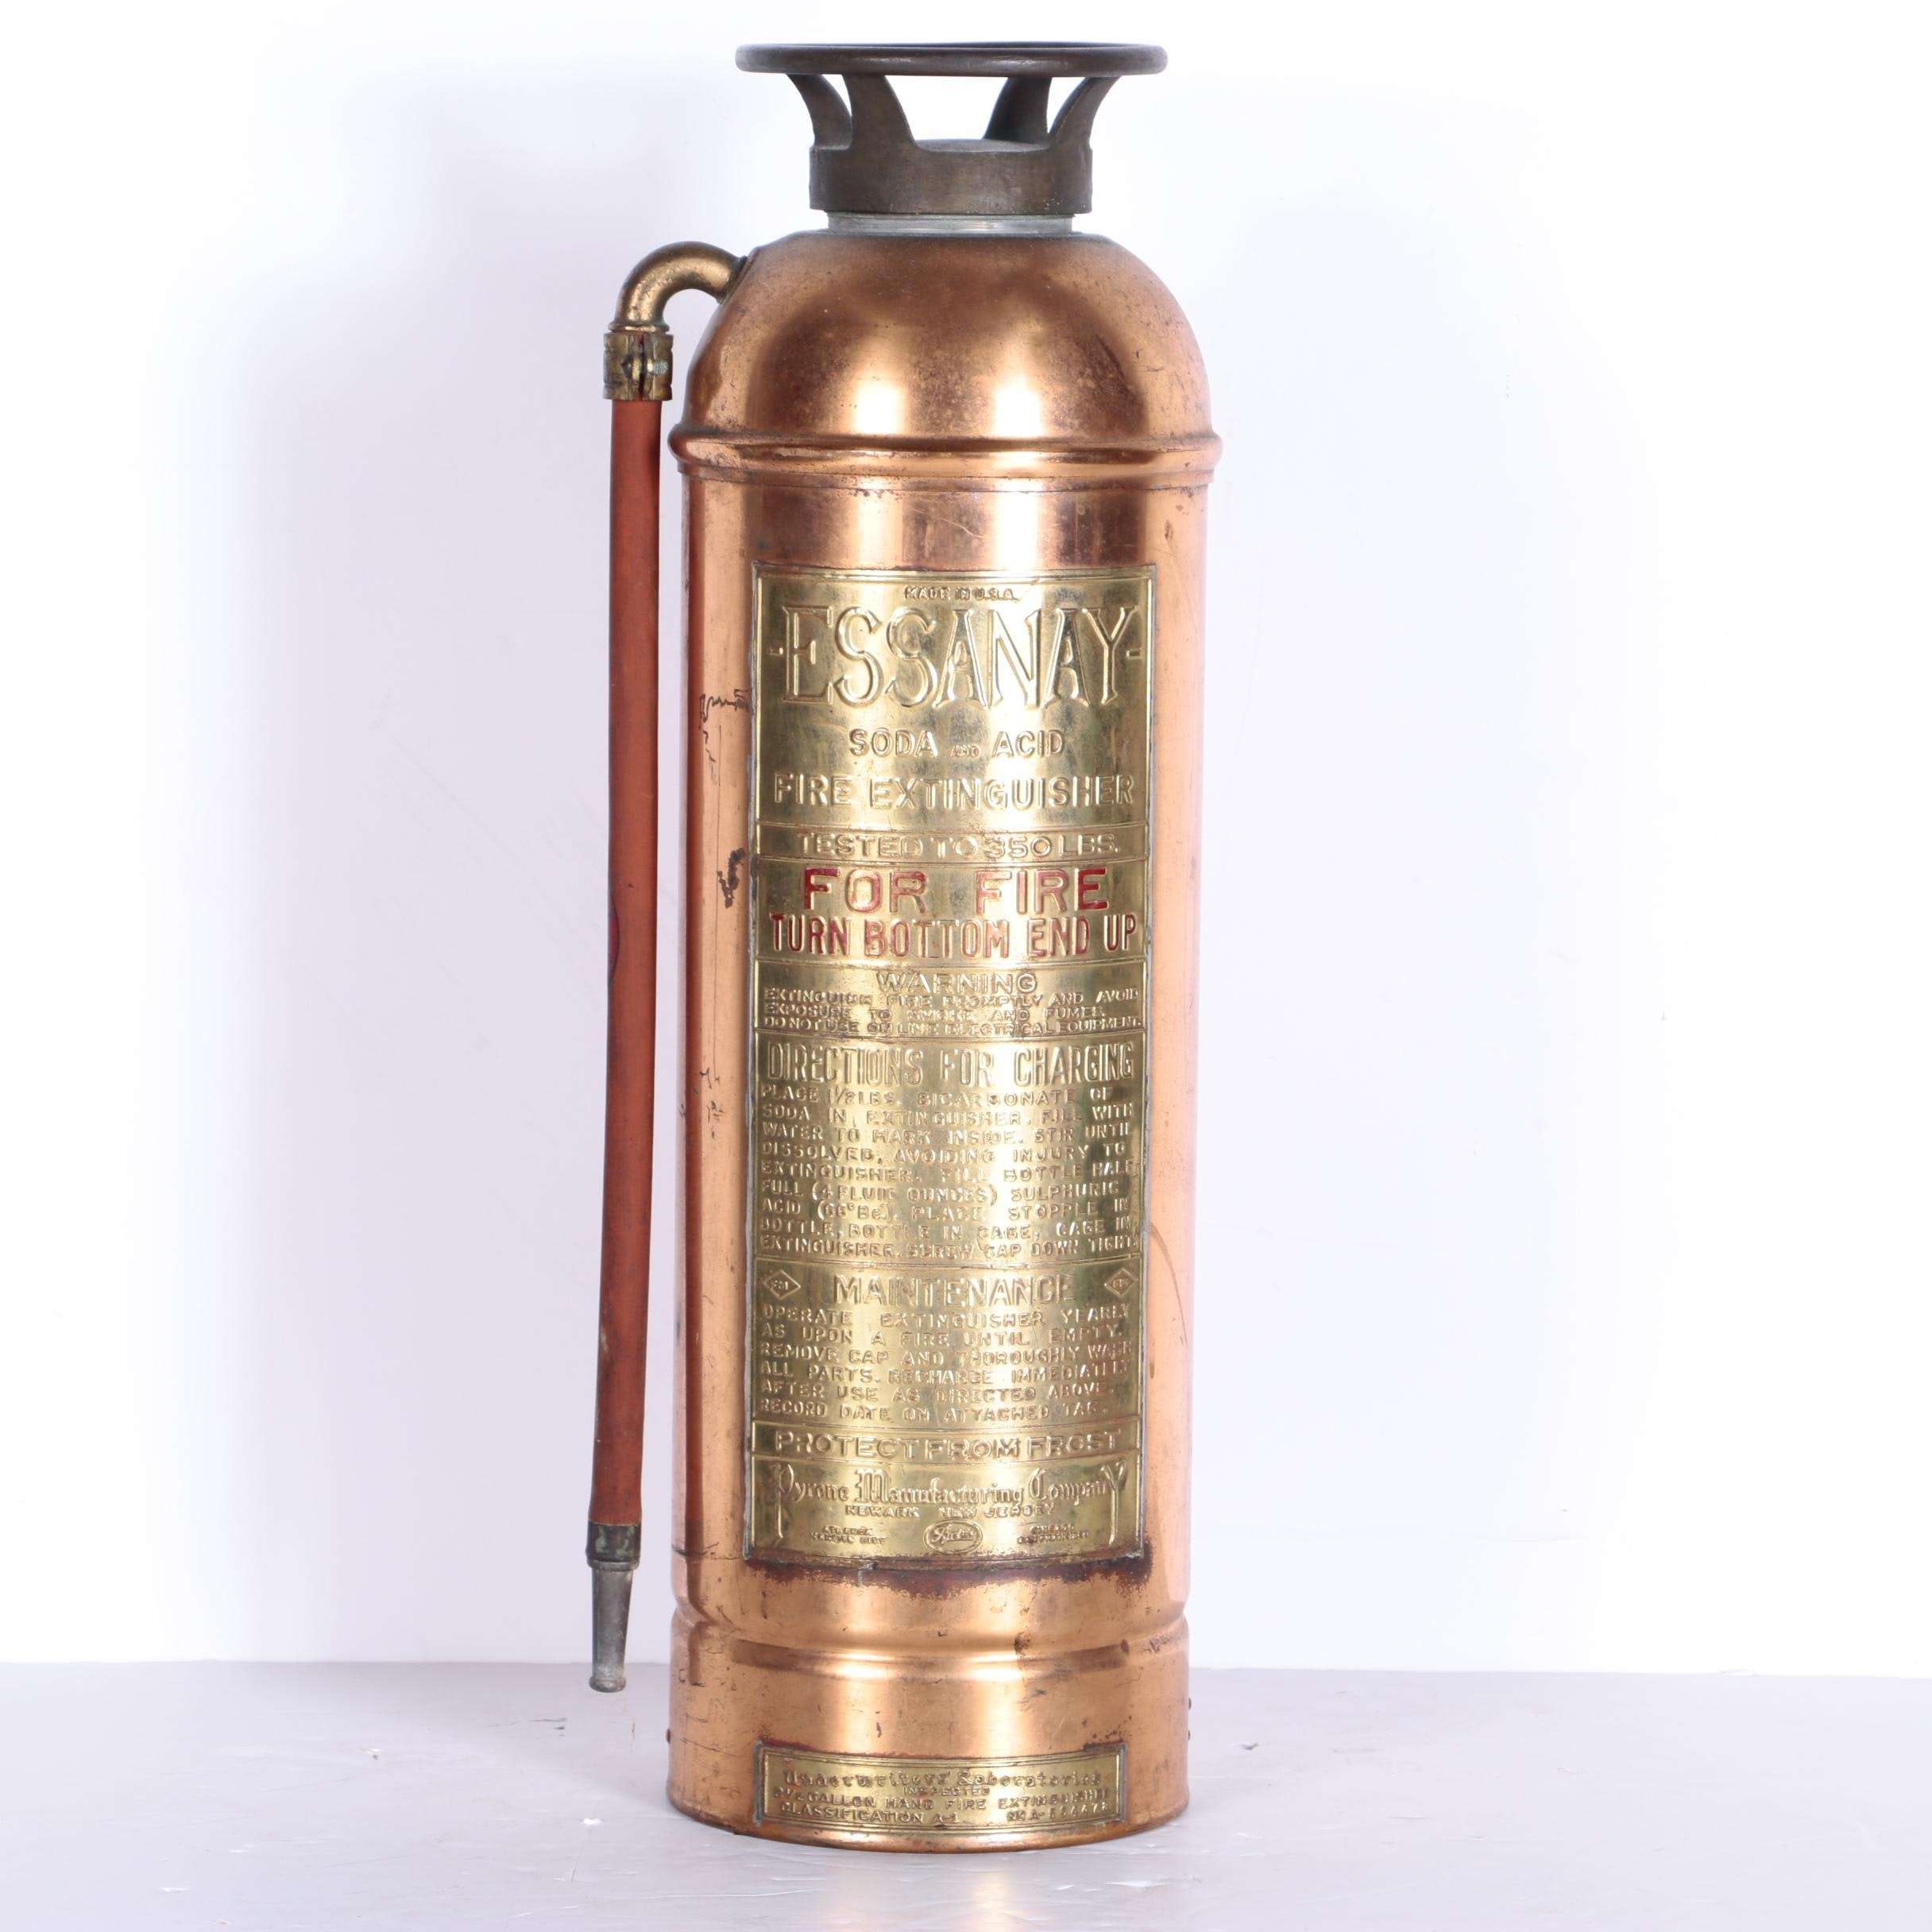 Vintage Essanay Copper And Brass Soda And Acid Fire Extinguisher